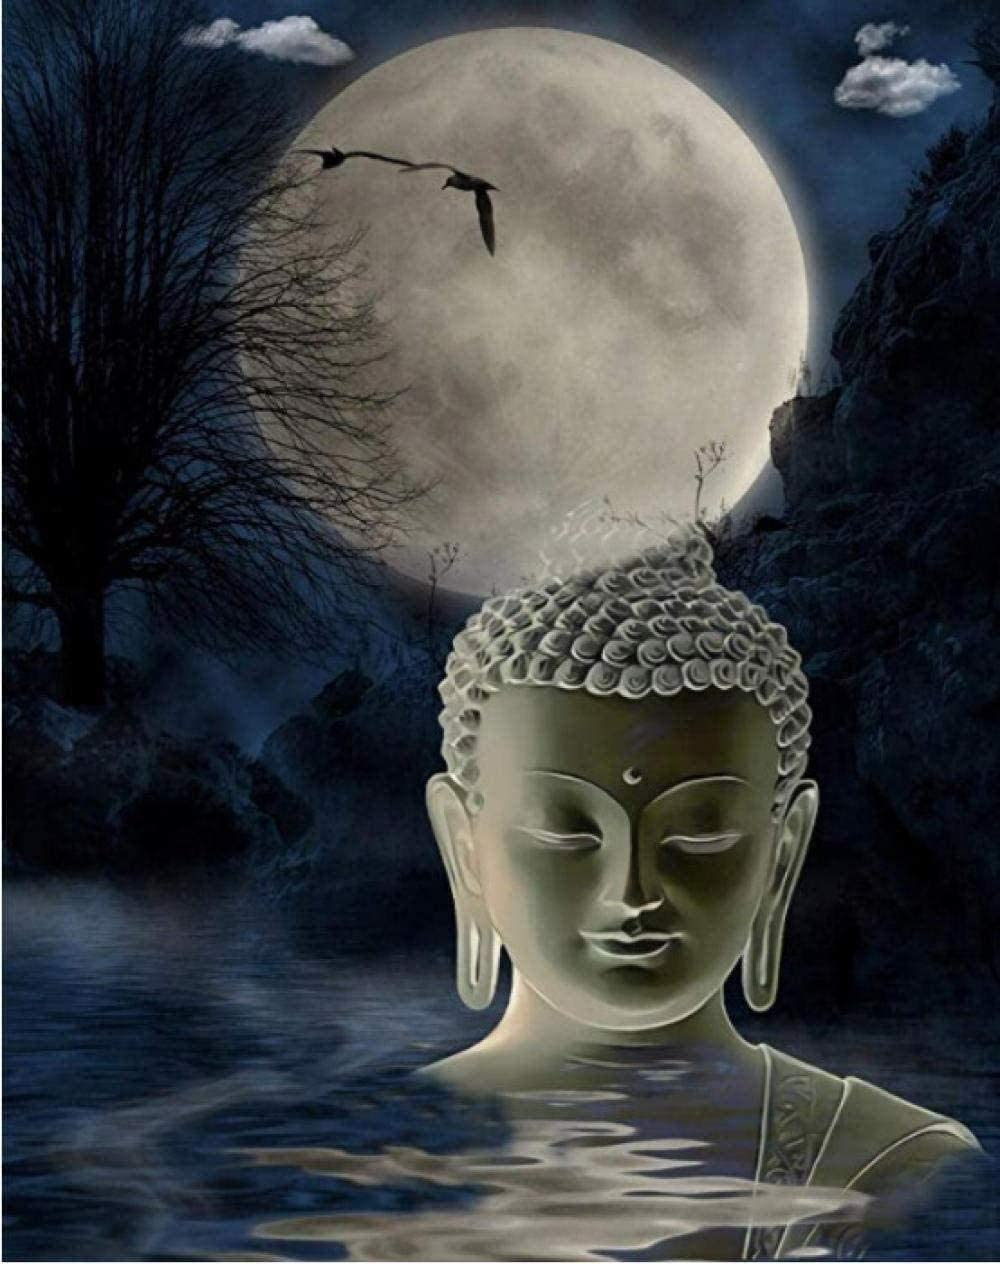 Jigsaw Puzzles for Adults 1000 Piece Moonlight Buddhas Birthday Personality Creative 3D Game DIY Home Decoration